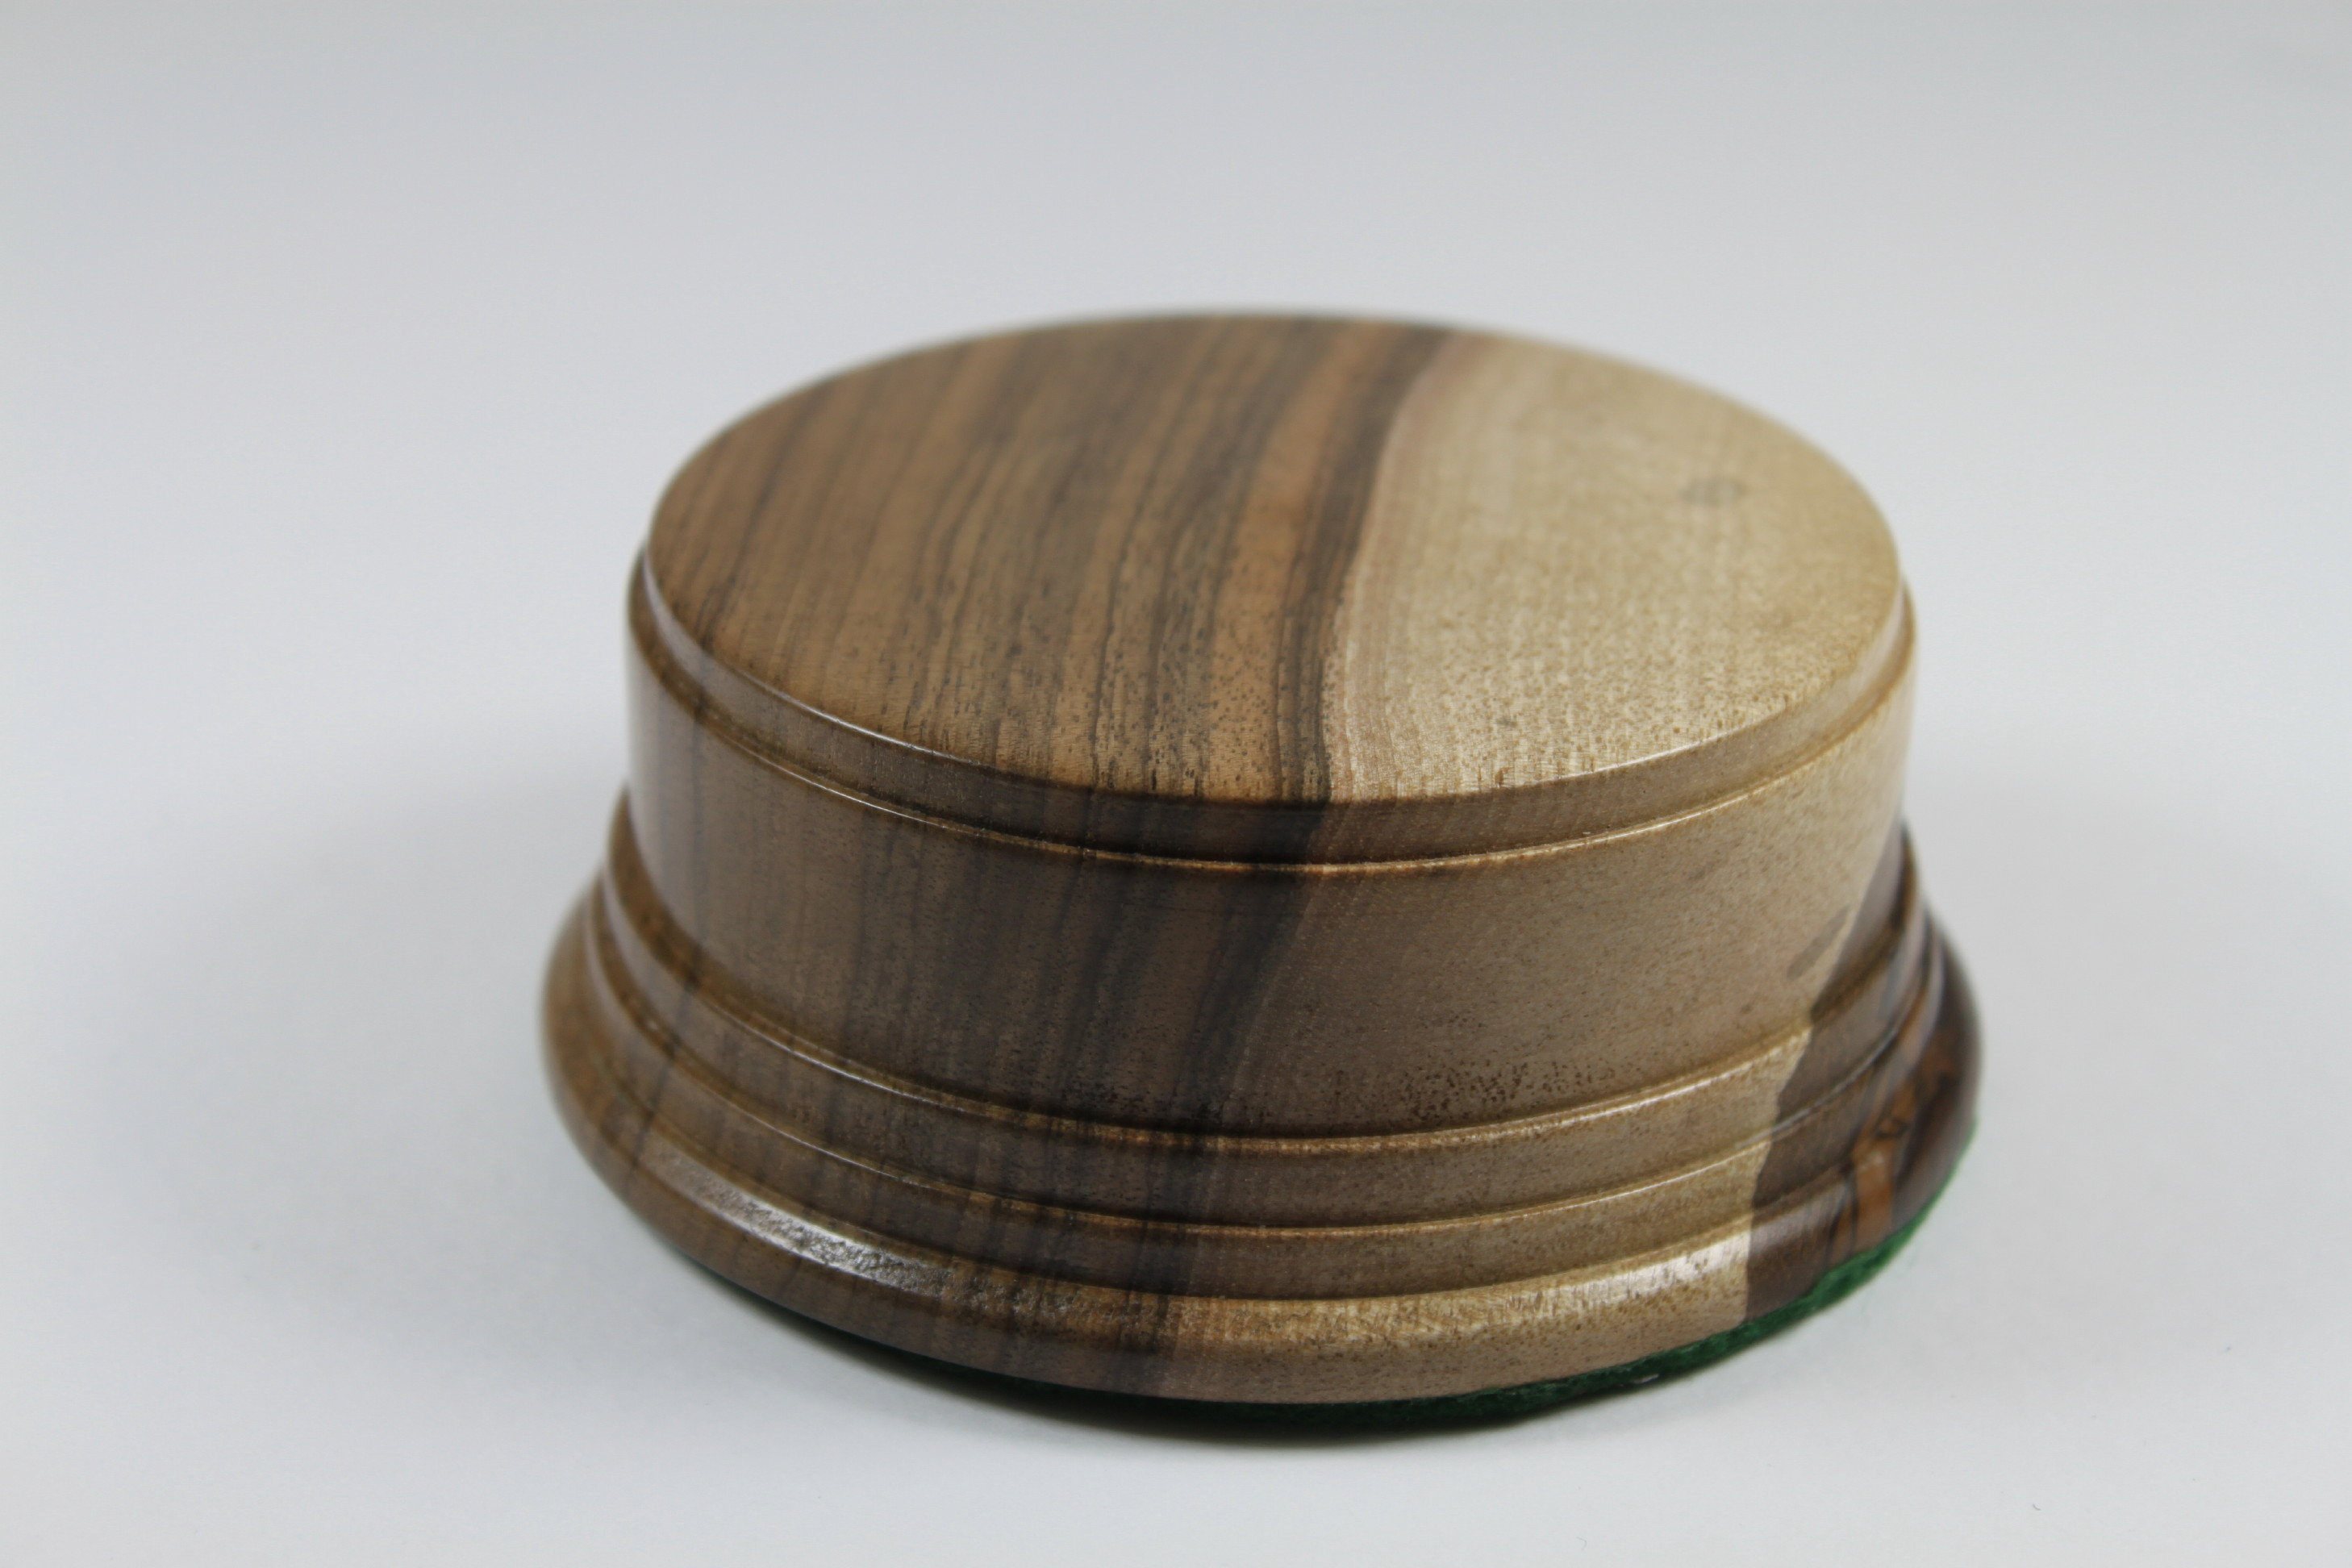 A Solid Wallnut Hand Turned Model / Trophy Base 40mm High and a display area of 82mm Diameter